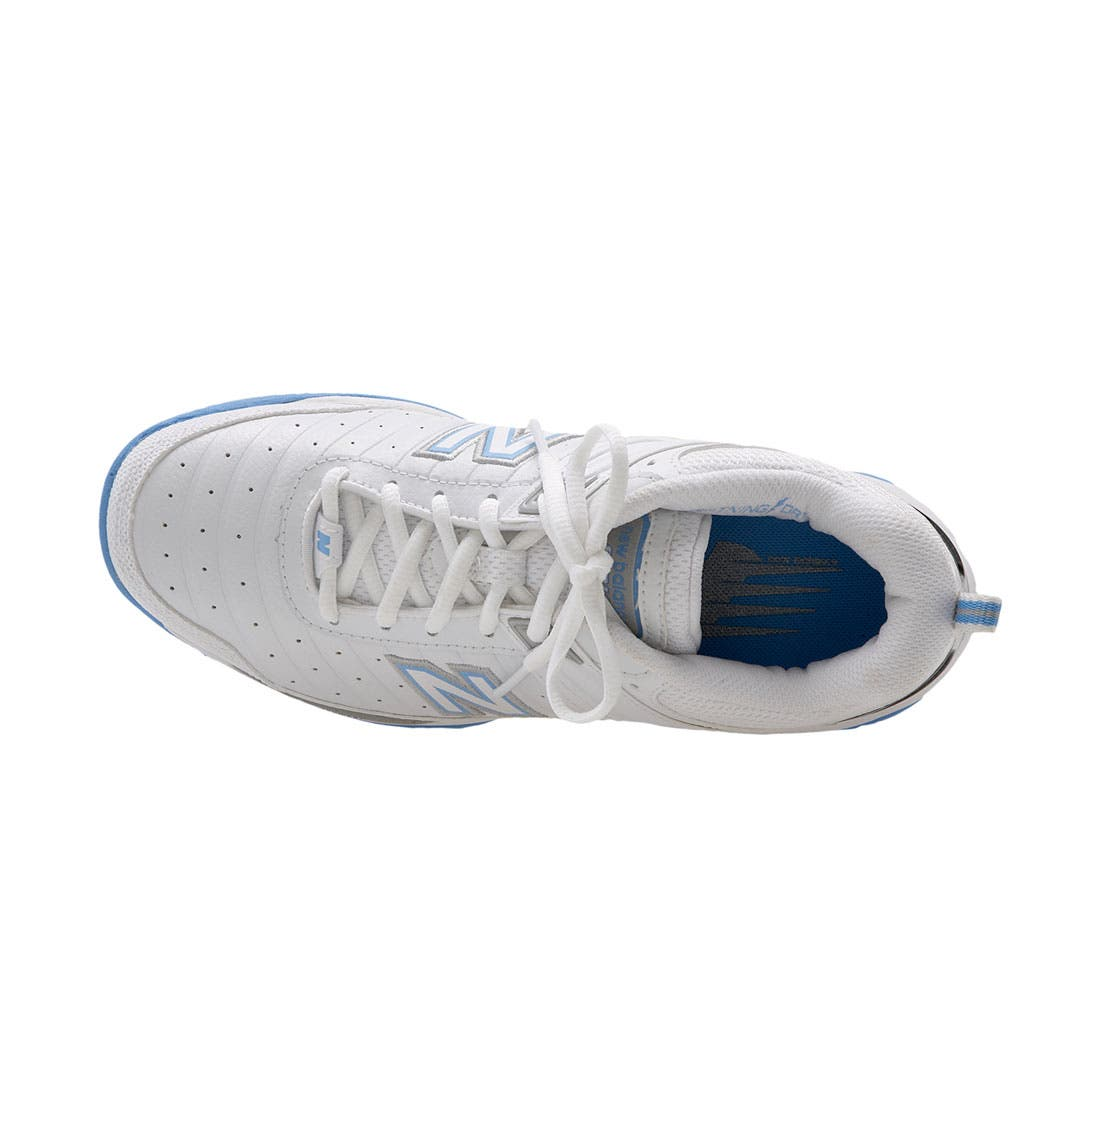 Alternate Image 2  - New Balance '804' Tennis Shoe (Women)